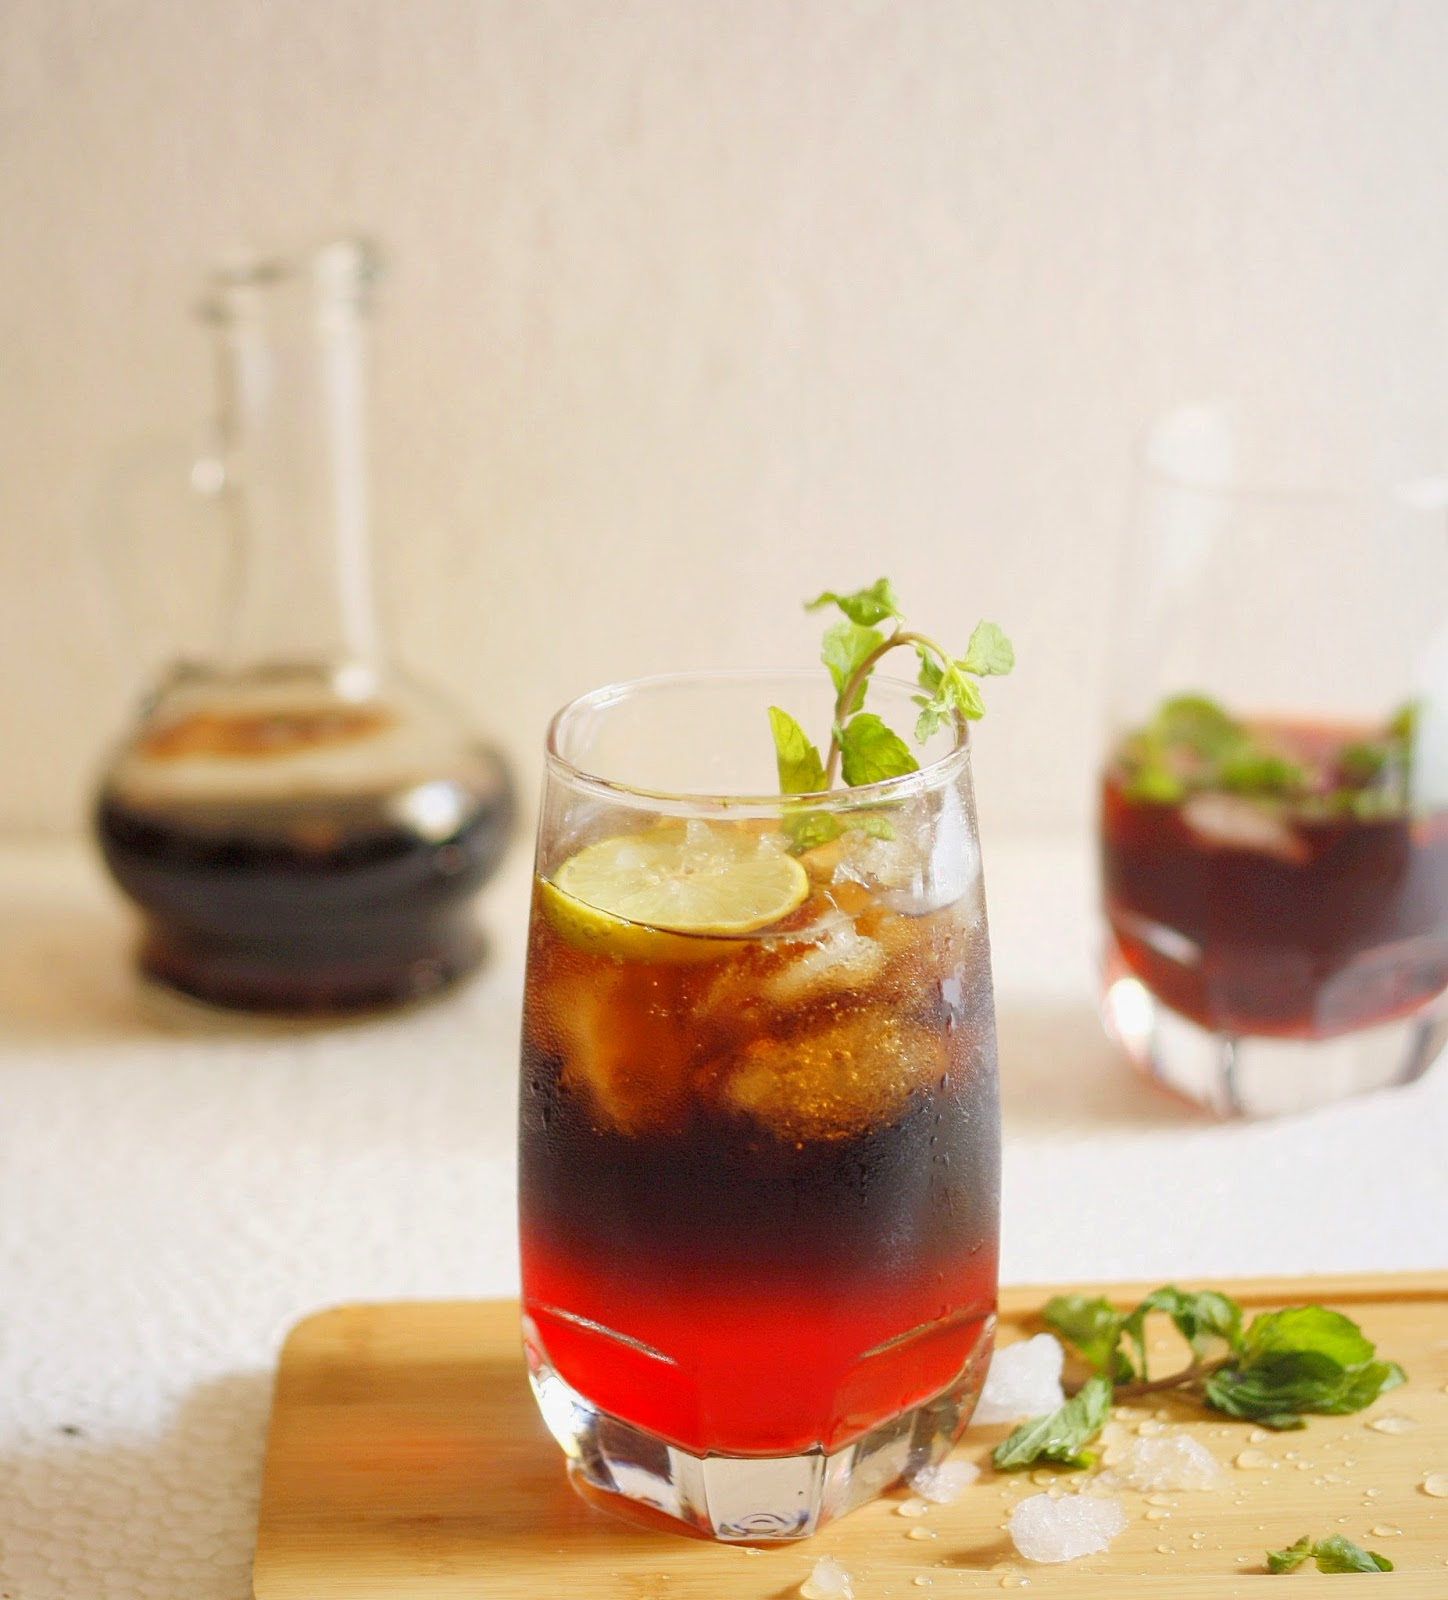 Coke,grenadine and ginger ale come together in the form of a delicious moktail. Add rum or ginger beer for a cocktail version